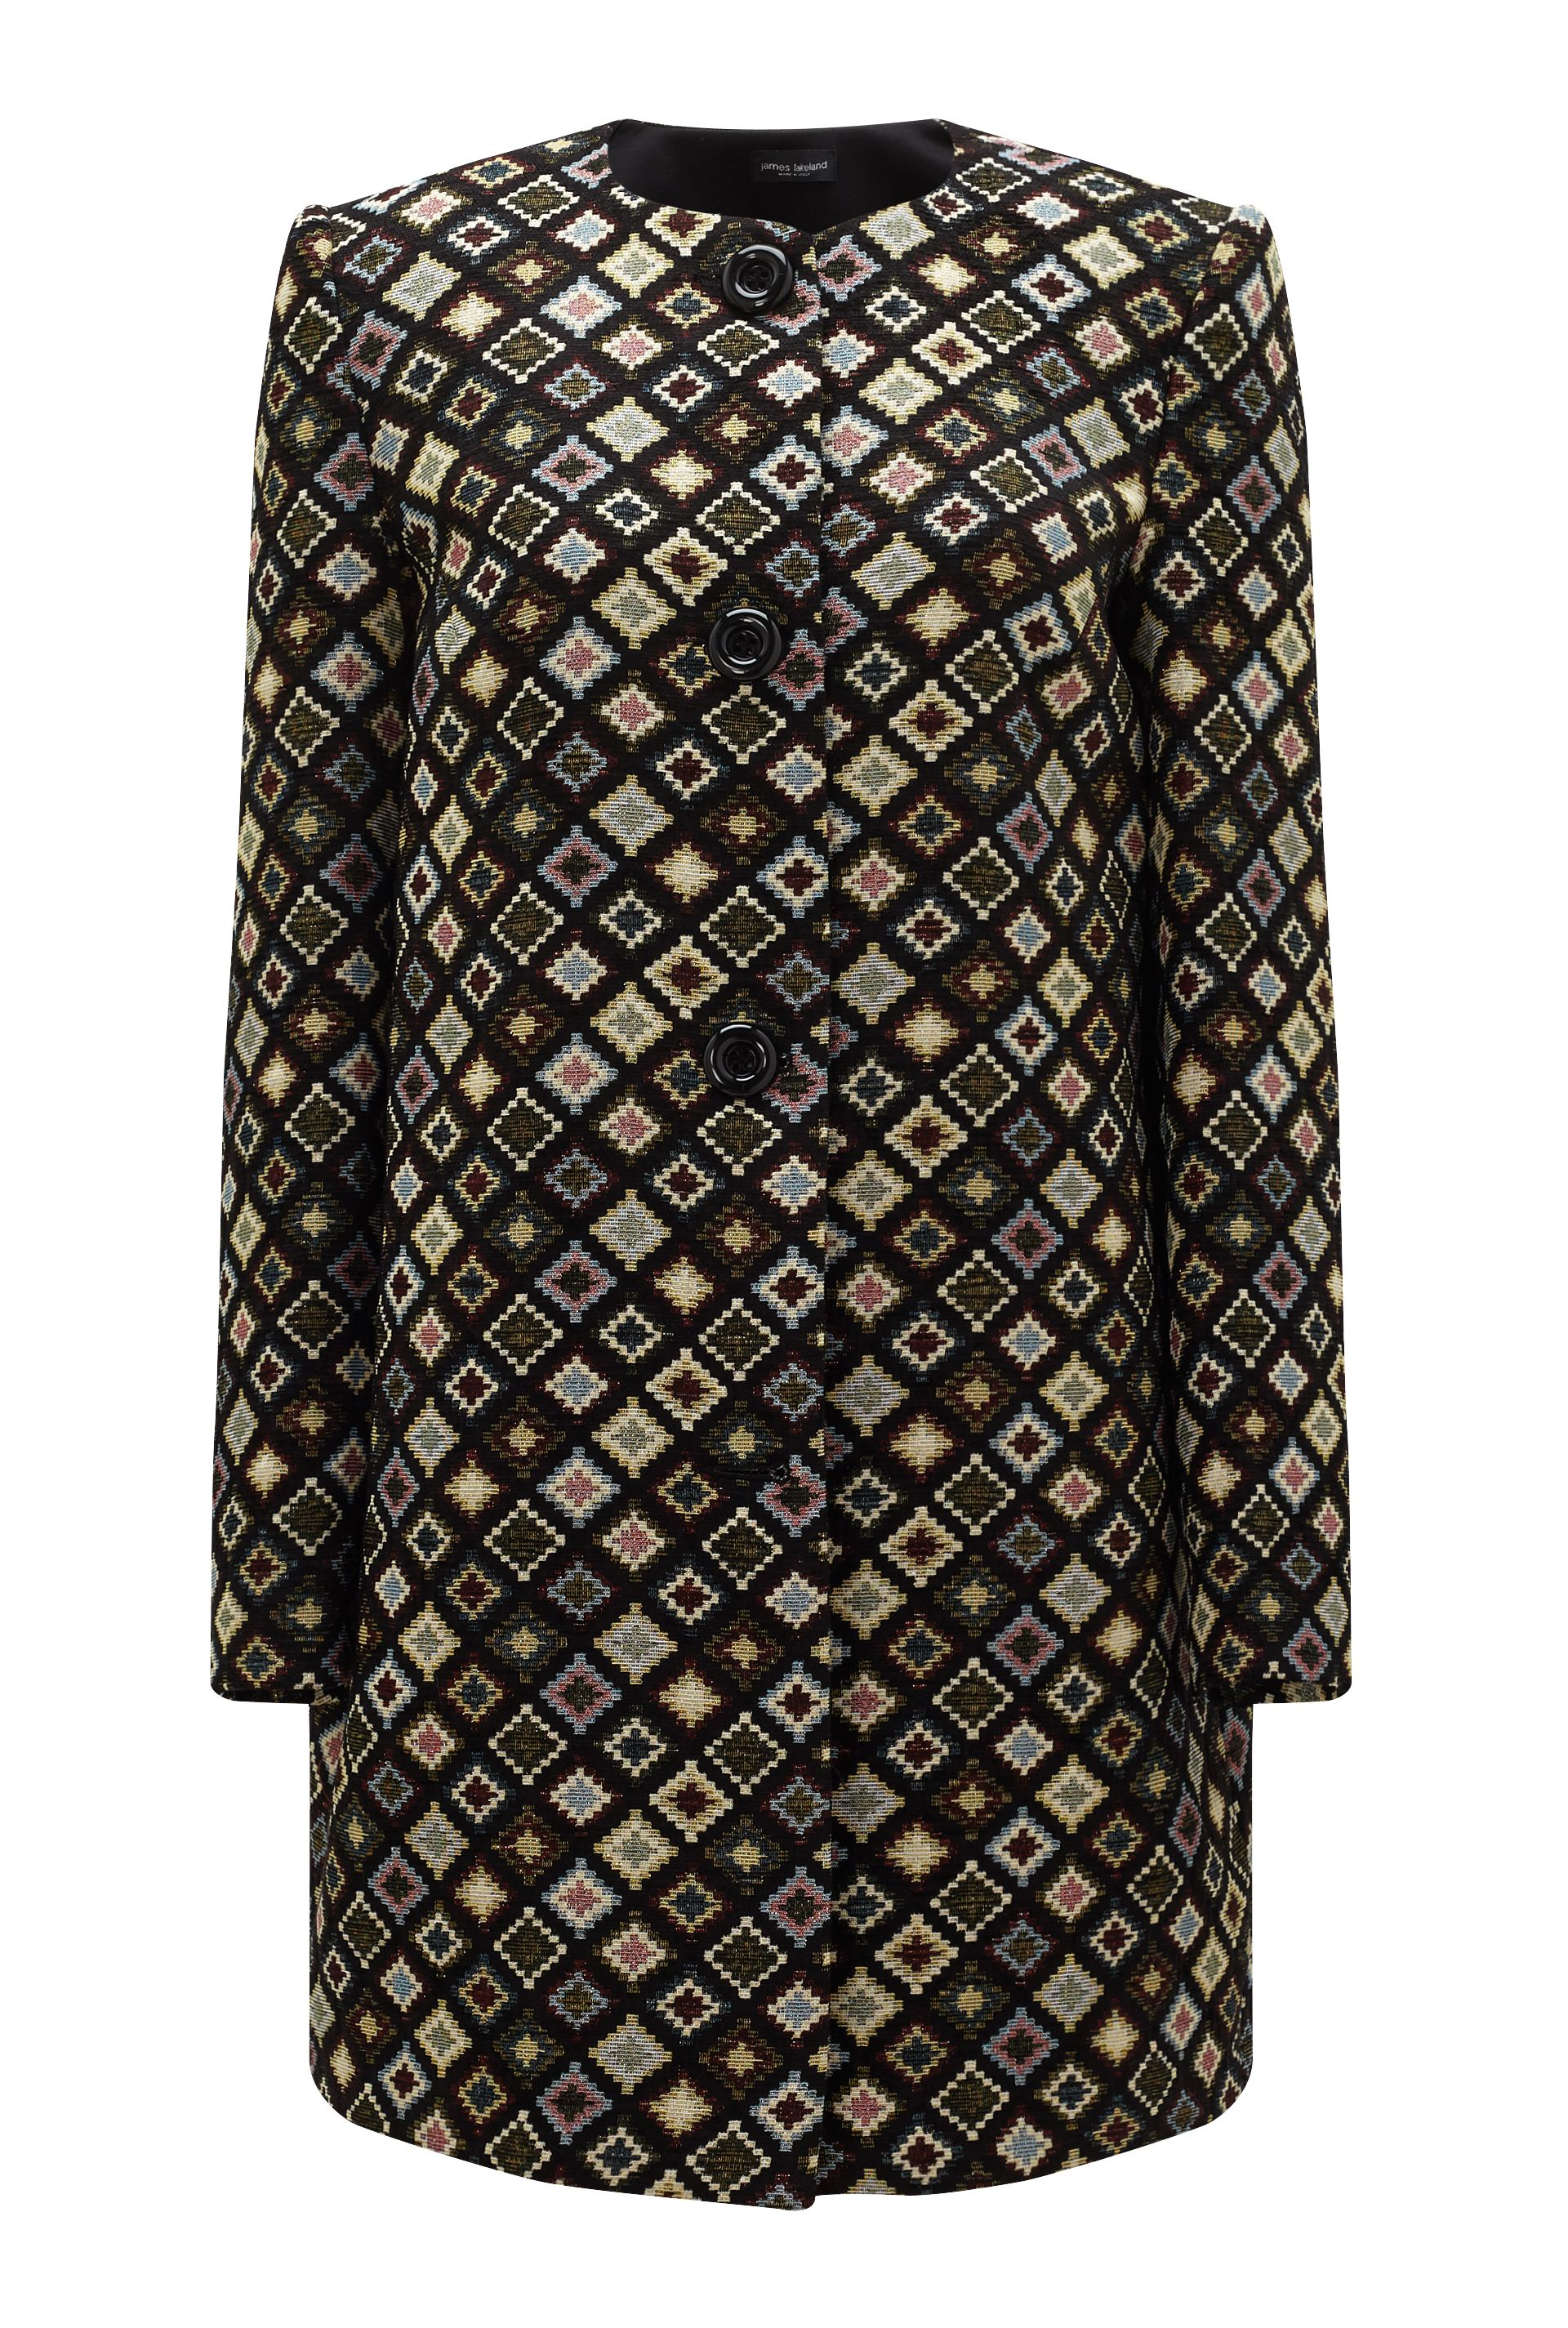 James Lakeland Jacquard Pattern Coat, Black